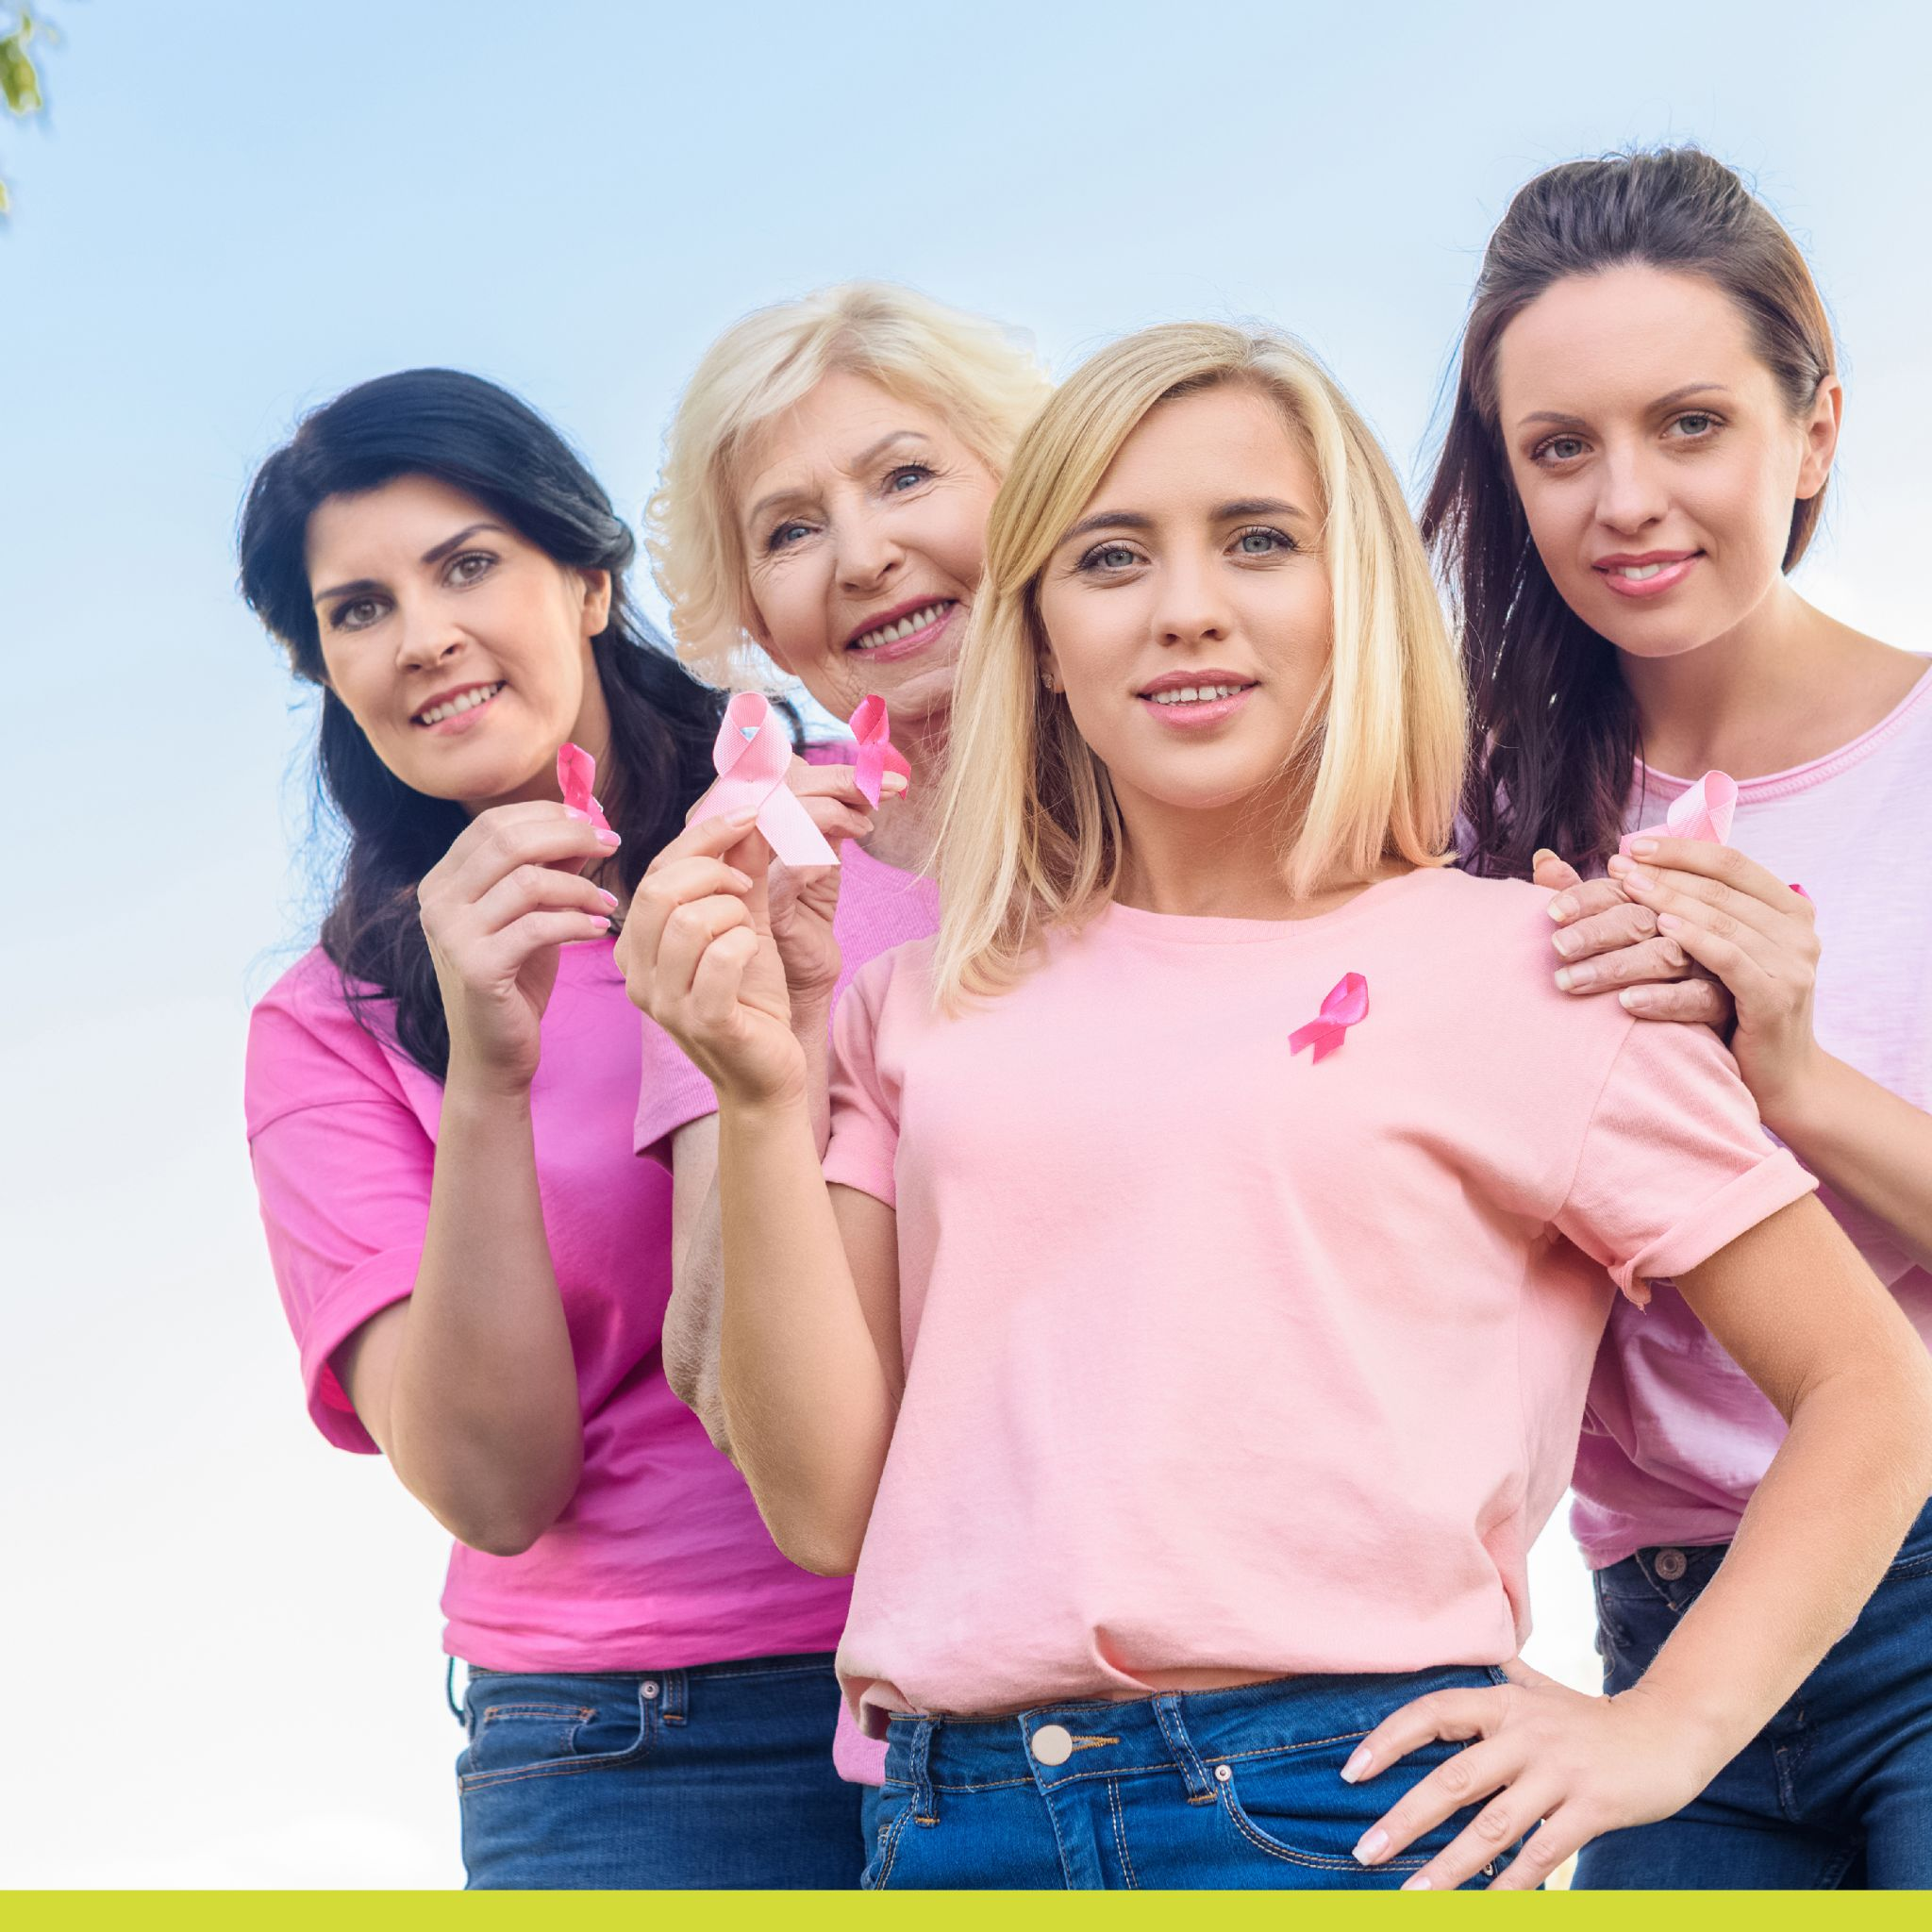 Women in pink shirts holding Breast Cancer awareness ribbons